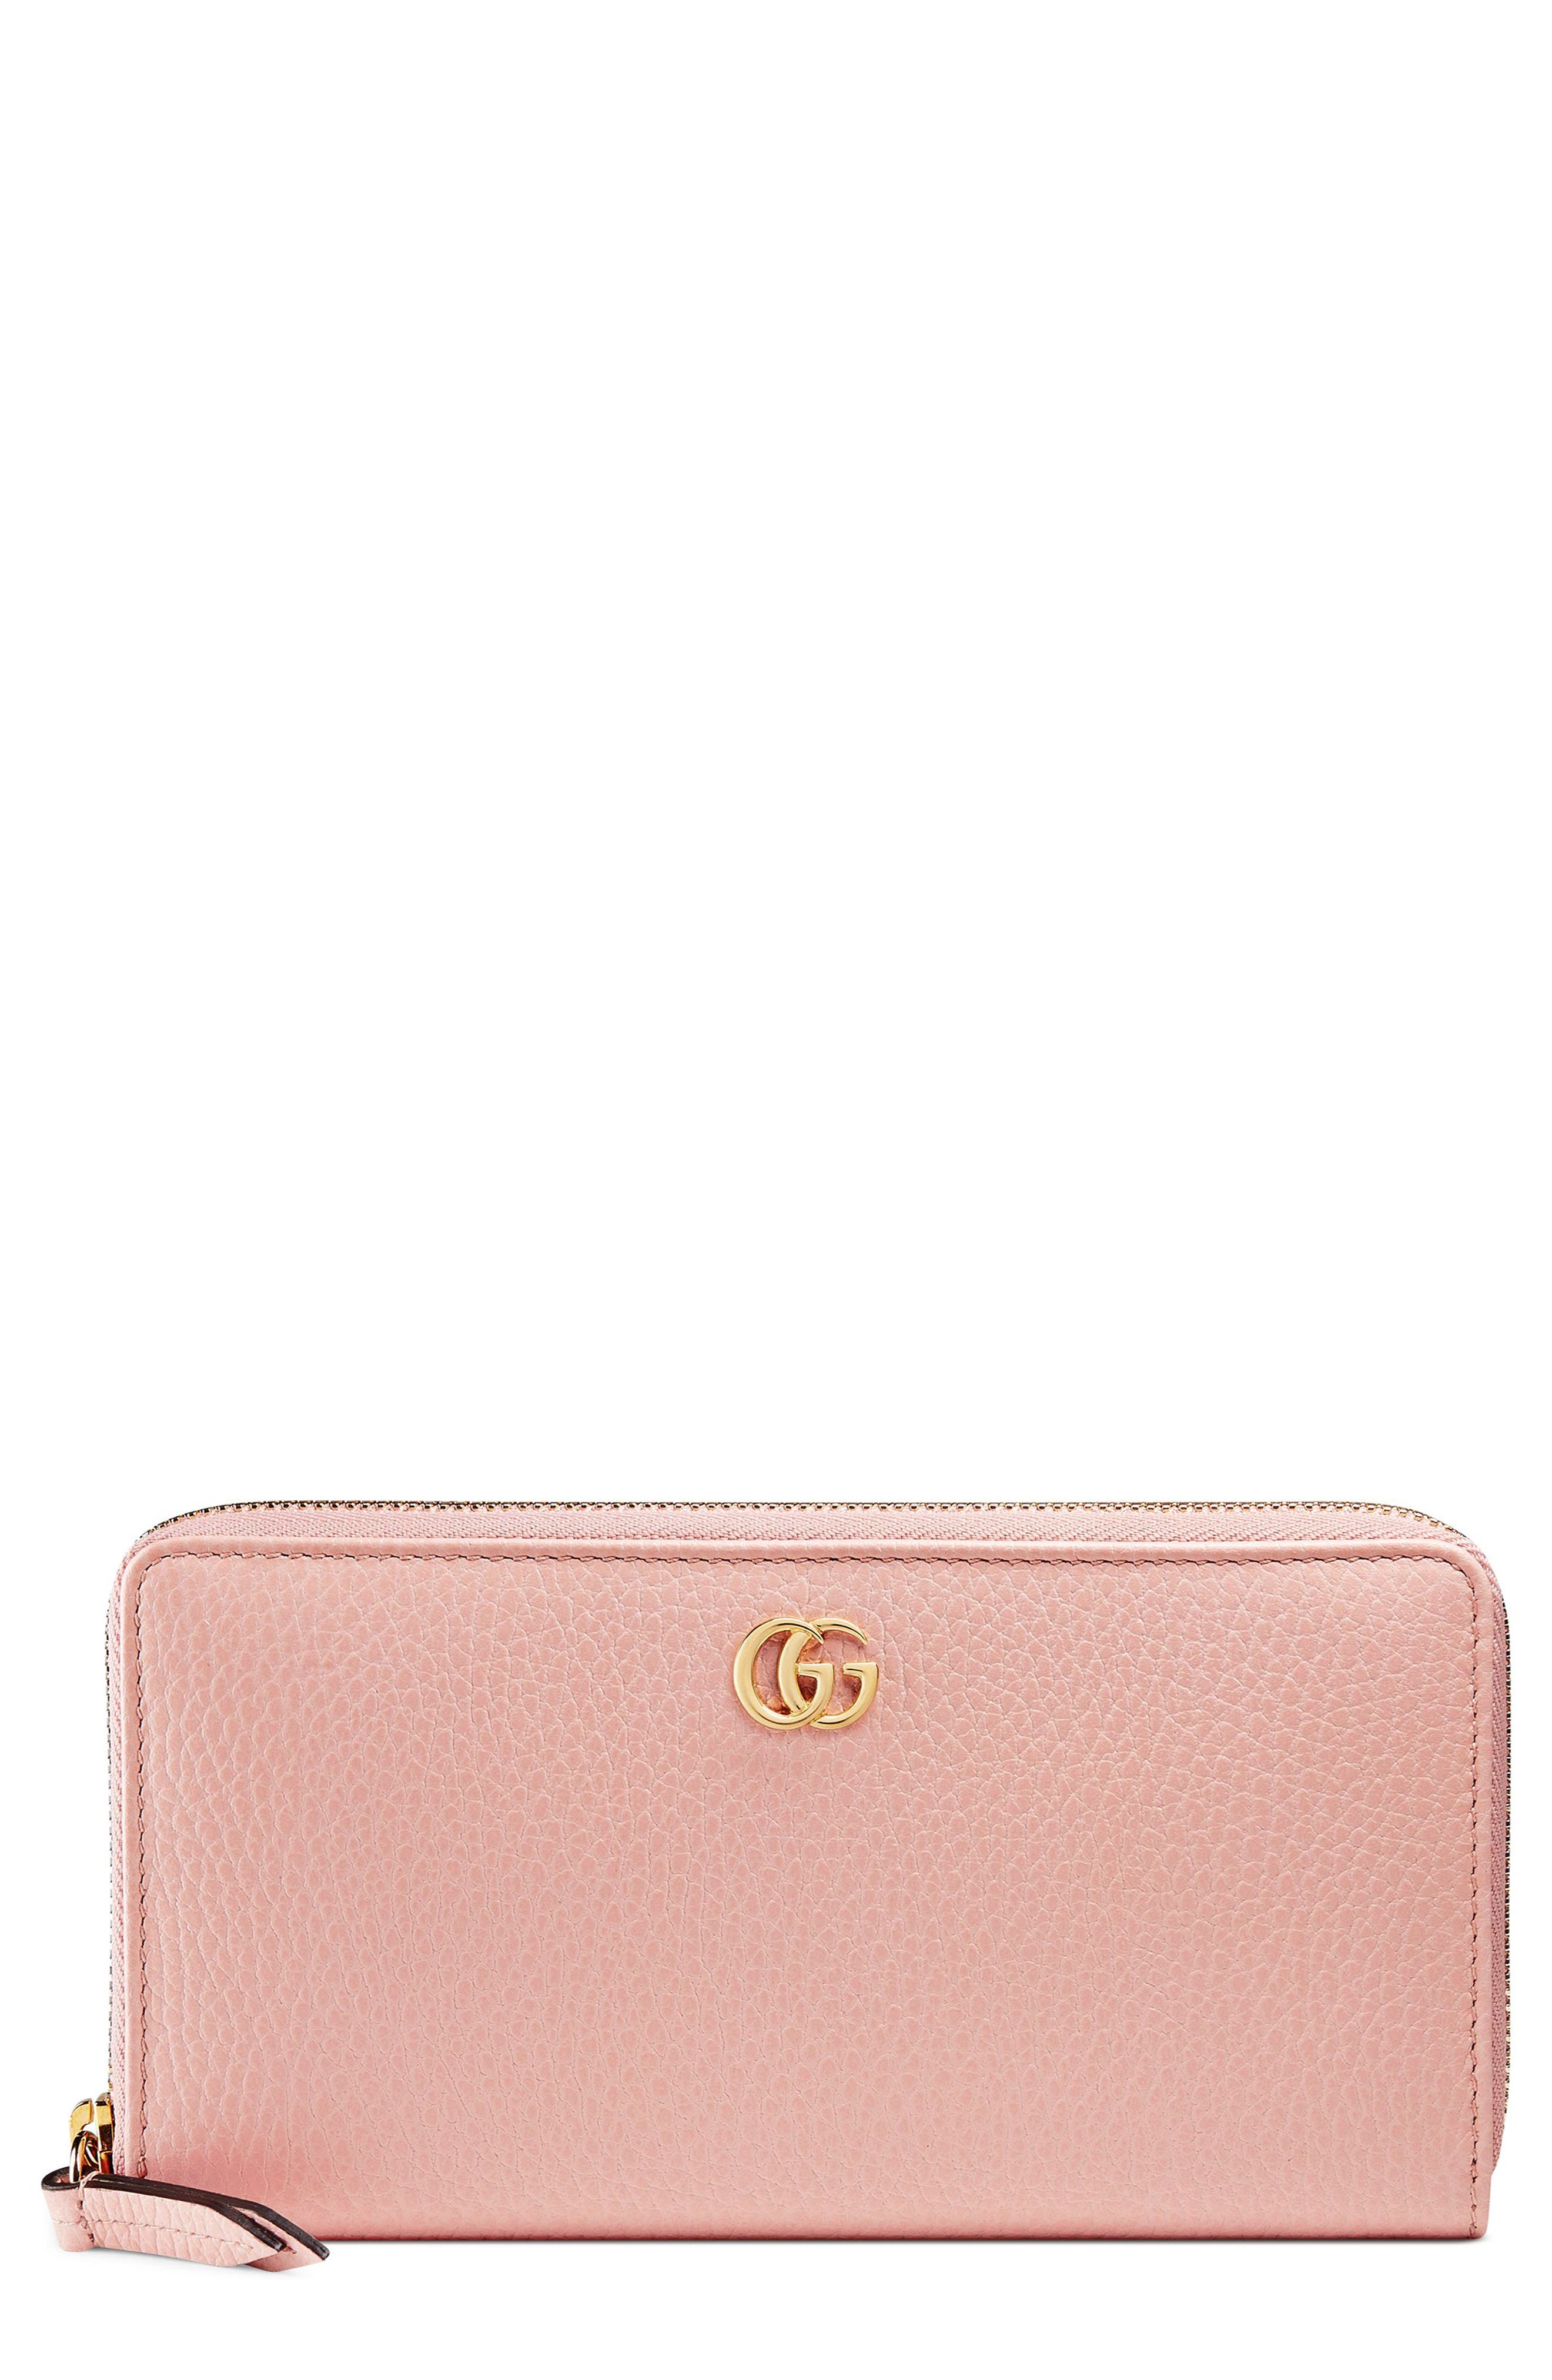 Petite Marmont Leather Zip Around Wallet,                         Main,                         color, PERFECT PINK